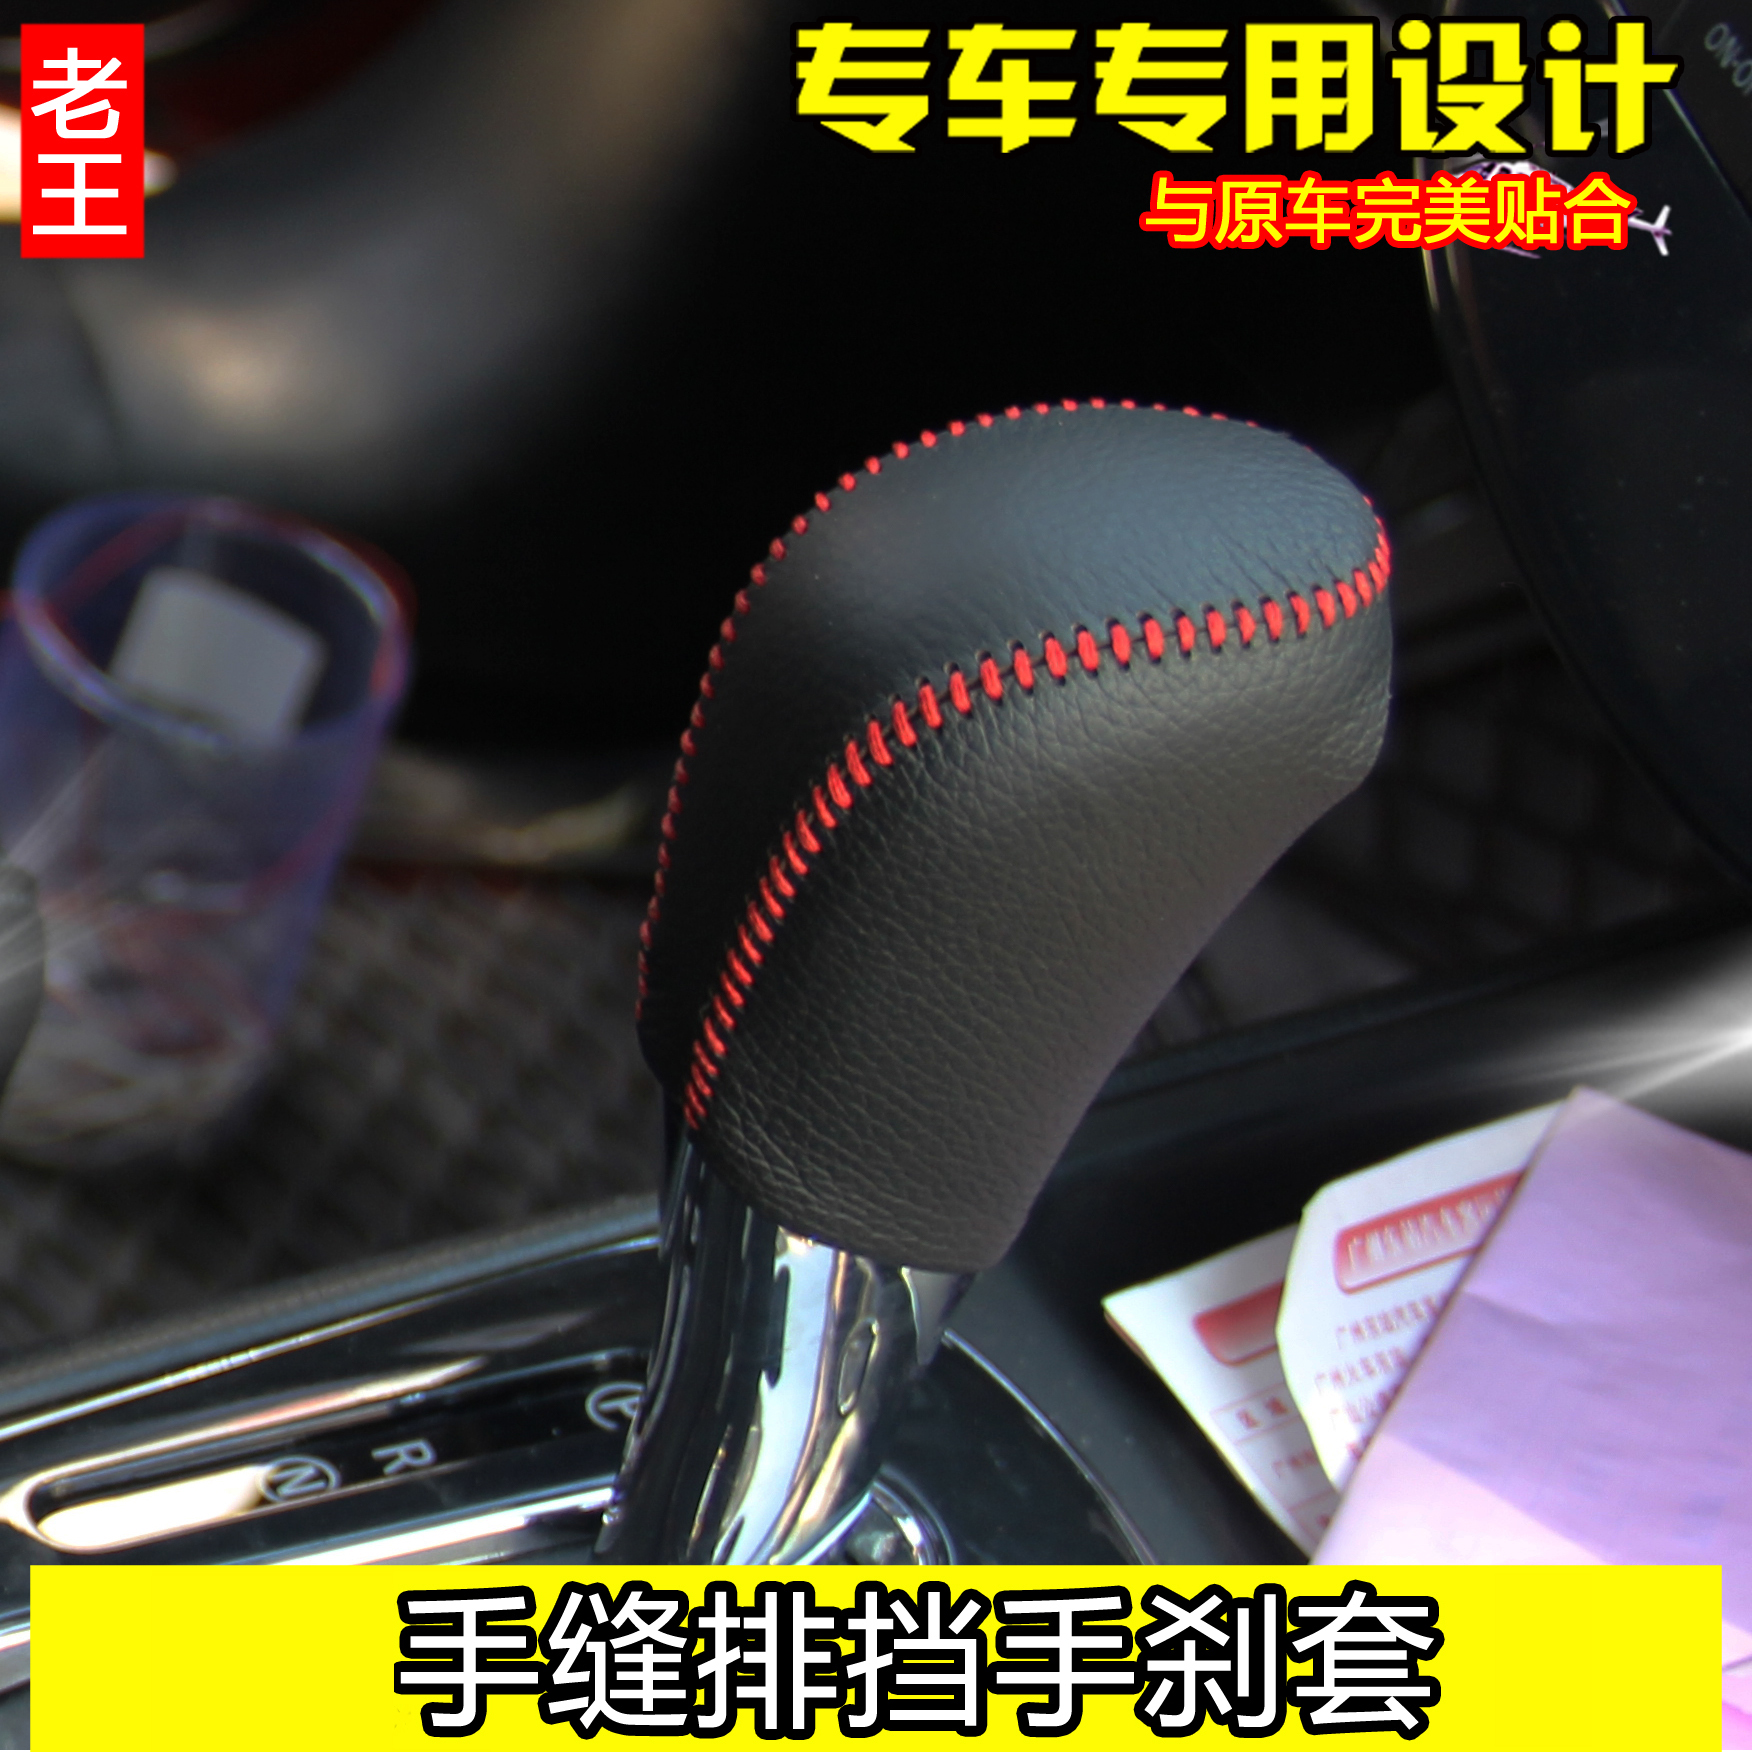 Nissan livina new tiida new sunshine sylphy chun novel modified special leather gear sets handbrake sleeve gears sets